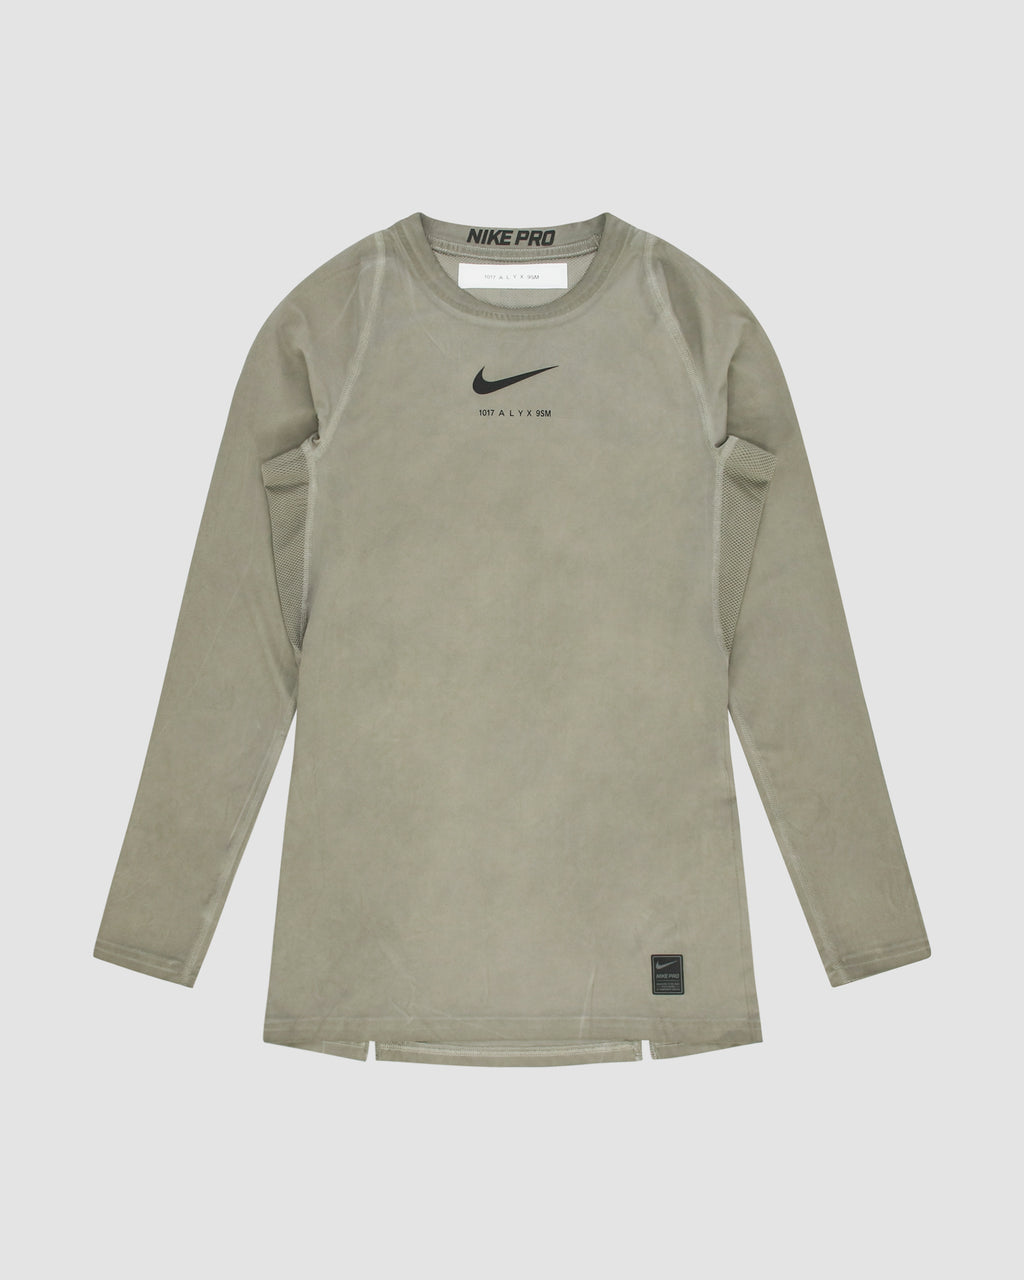 NIKE LS TEE W/DIRT TREATMENT - POPUP S20